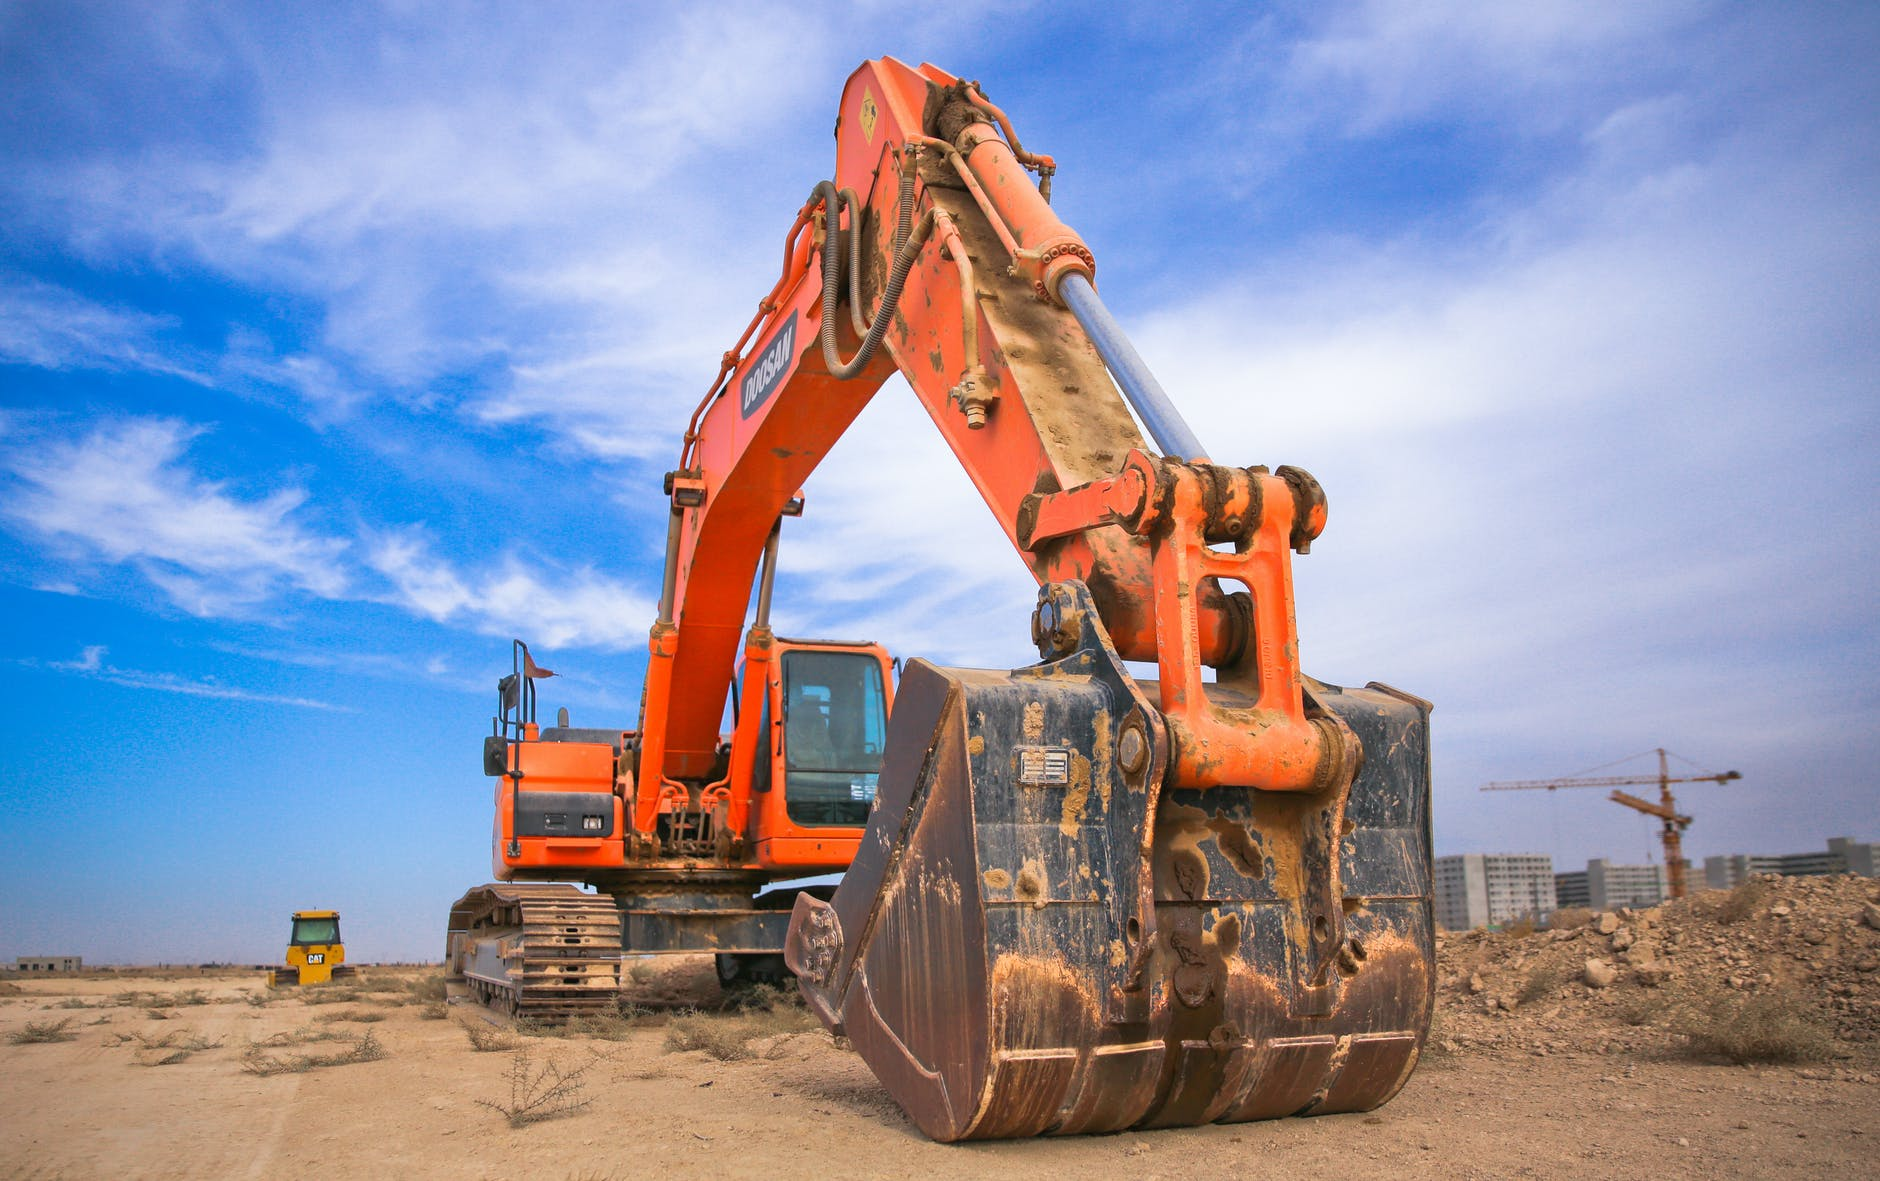 low angle photography of orange excavator under white clouds